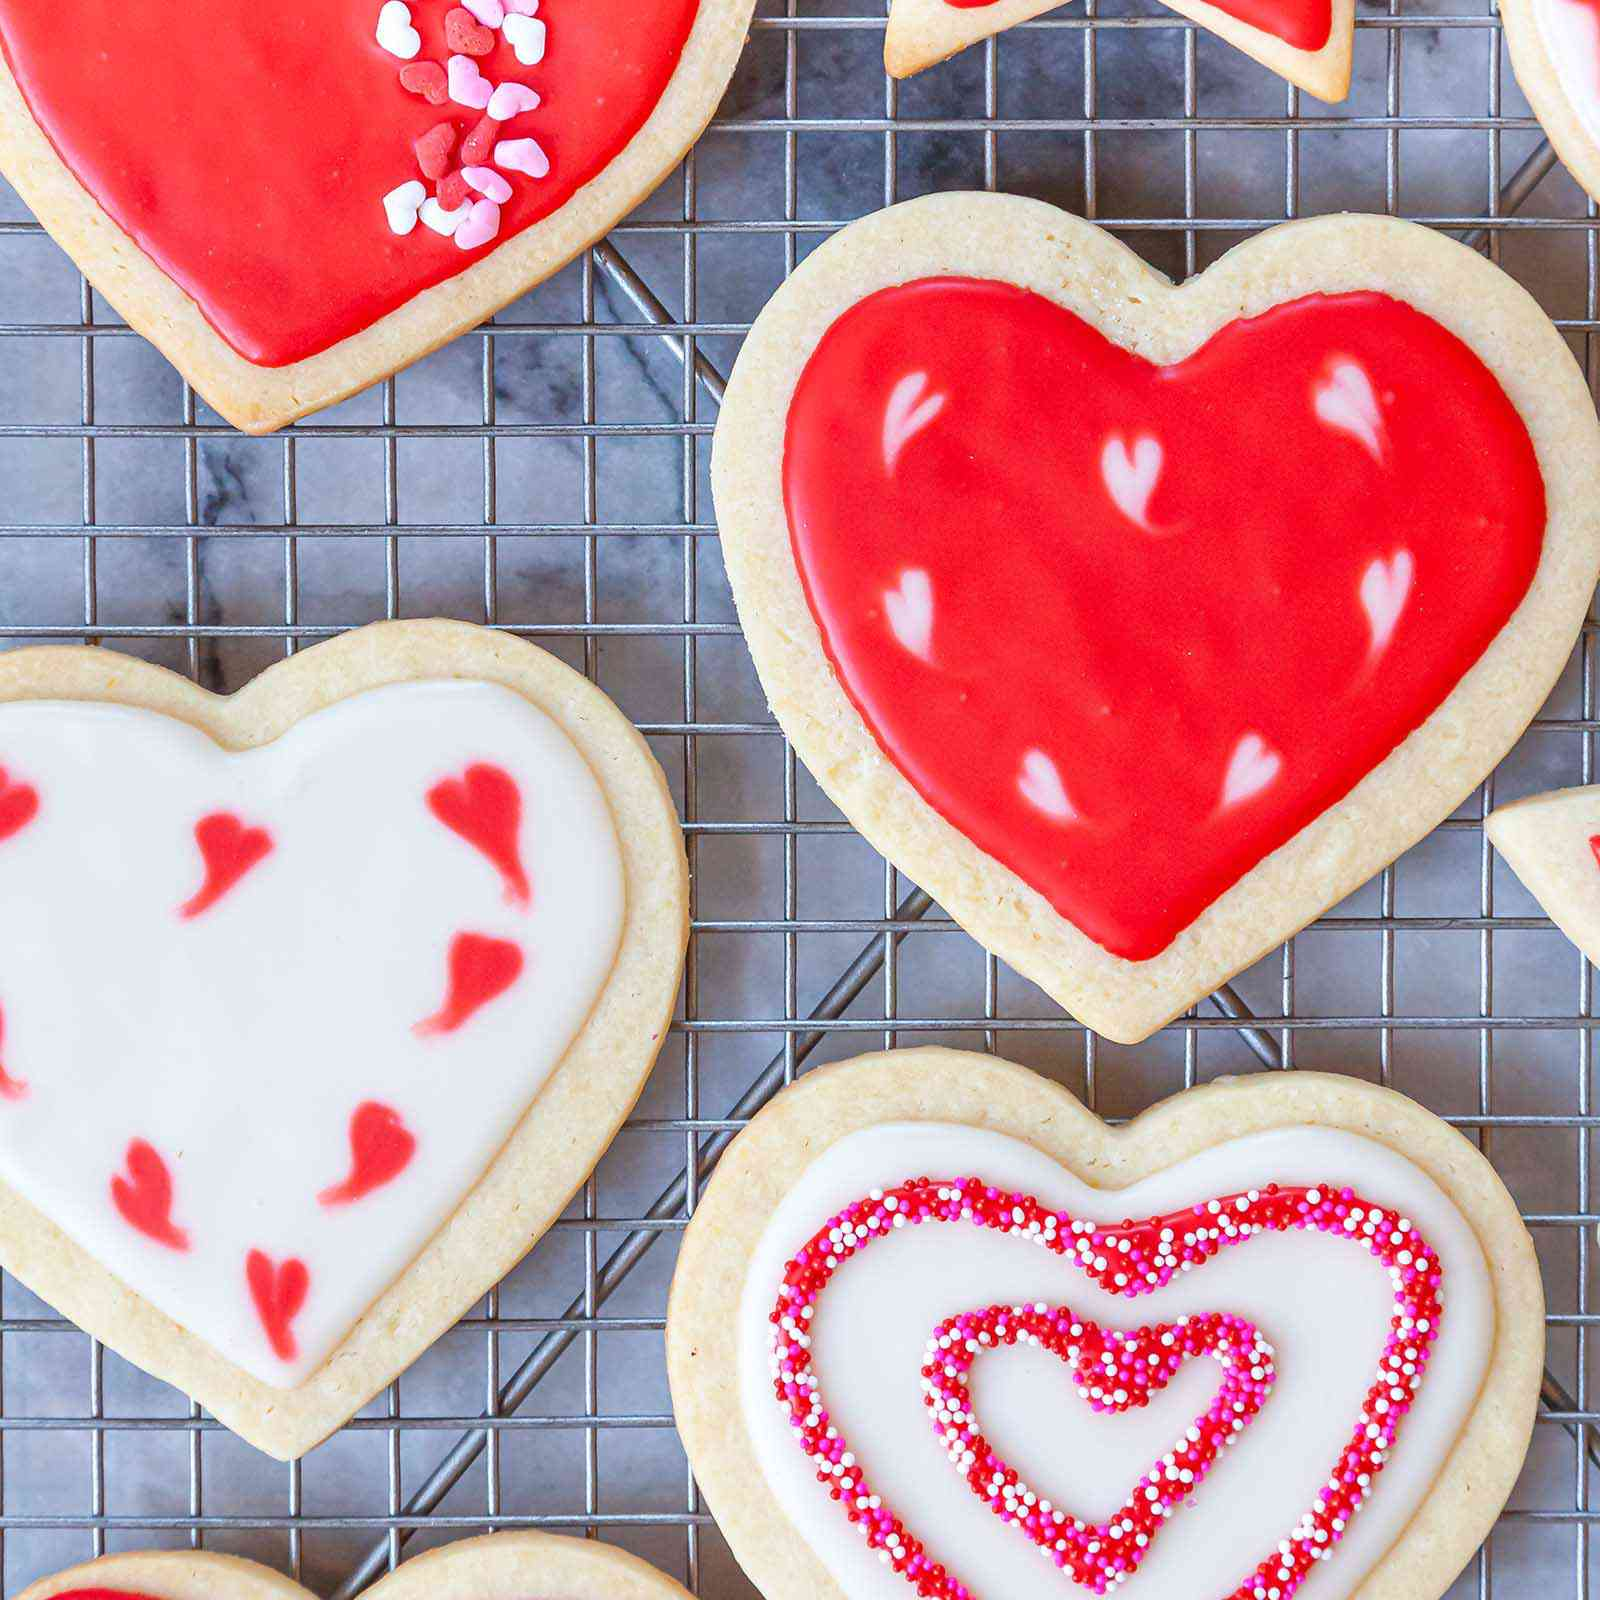 Easy Royal Icing Recipe piped into patterns on heart sugar cookies.